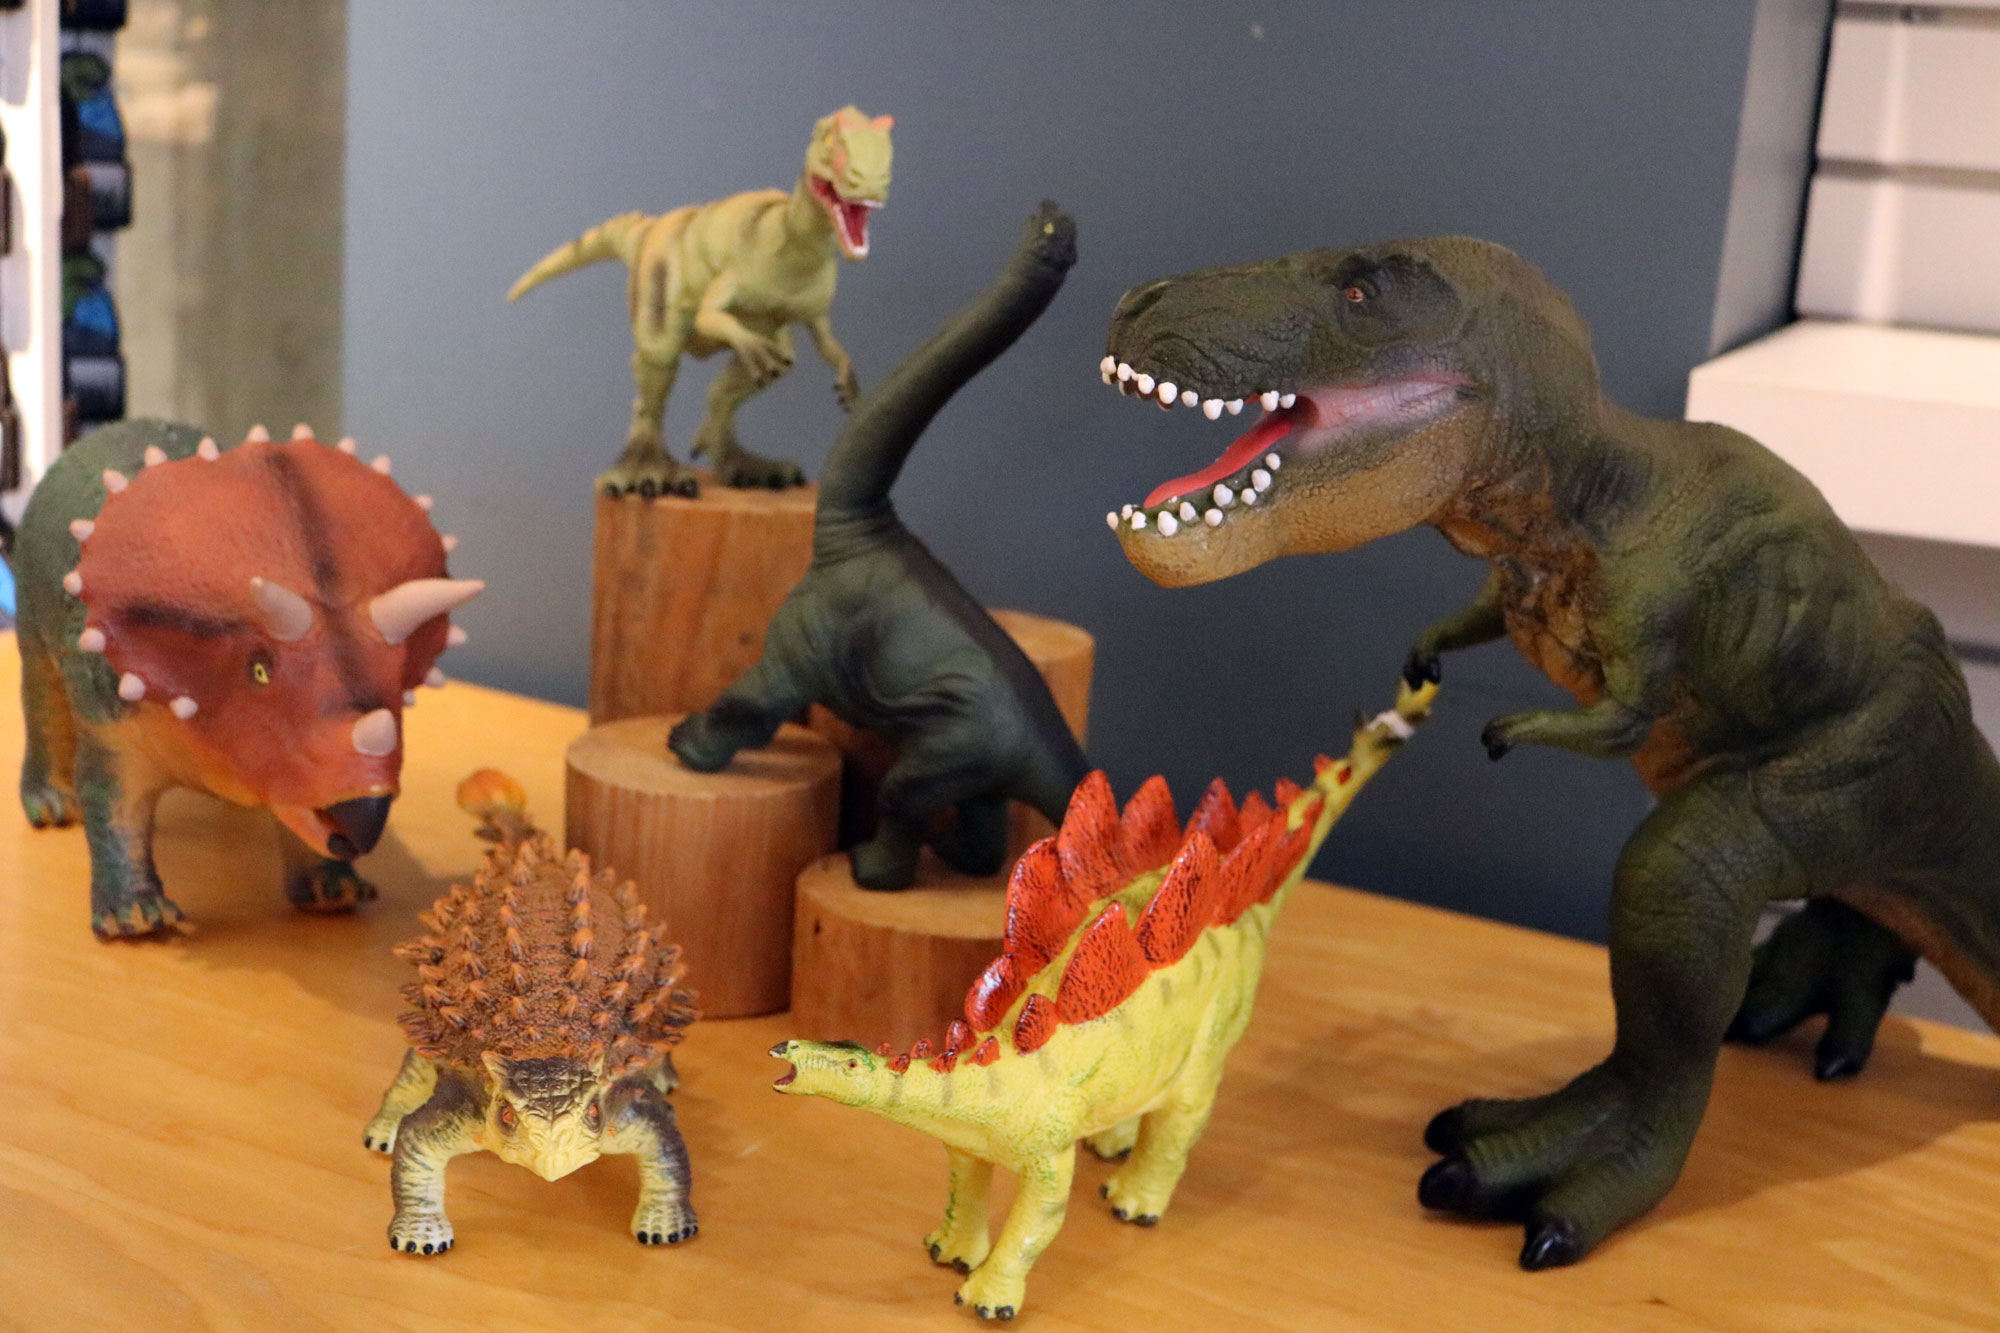 Rubber dinosaurs, large and small